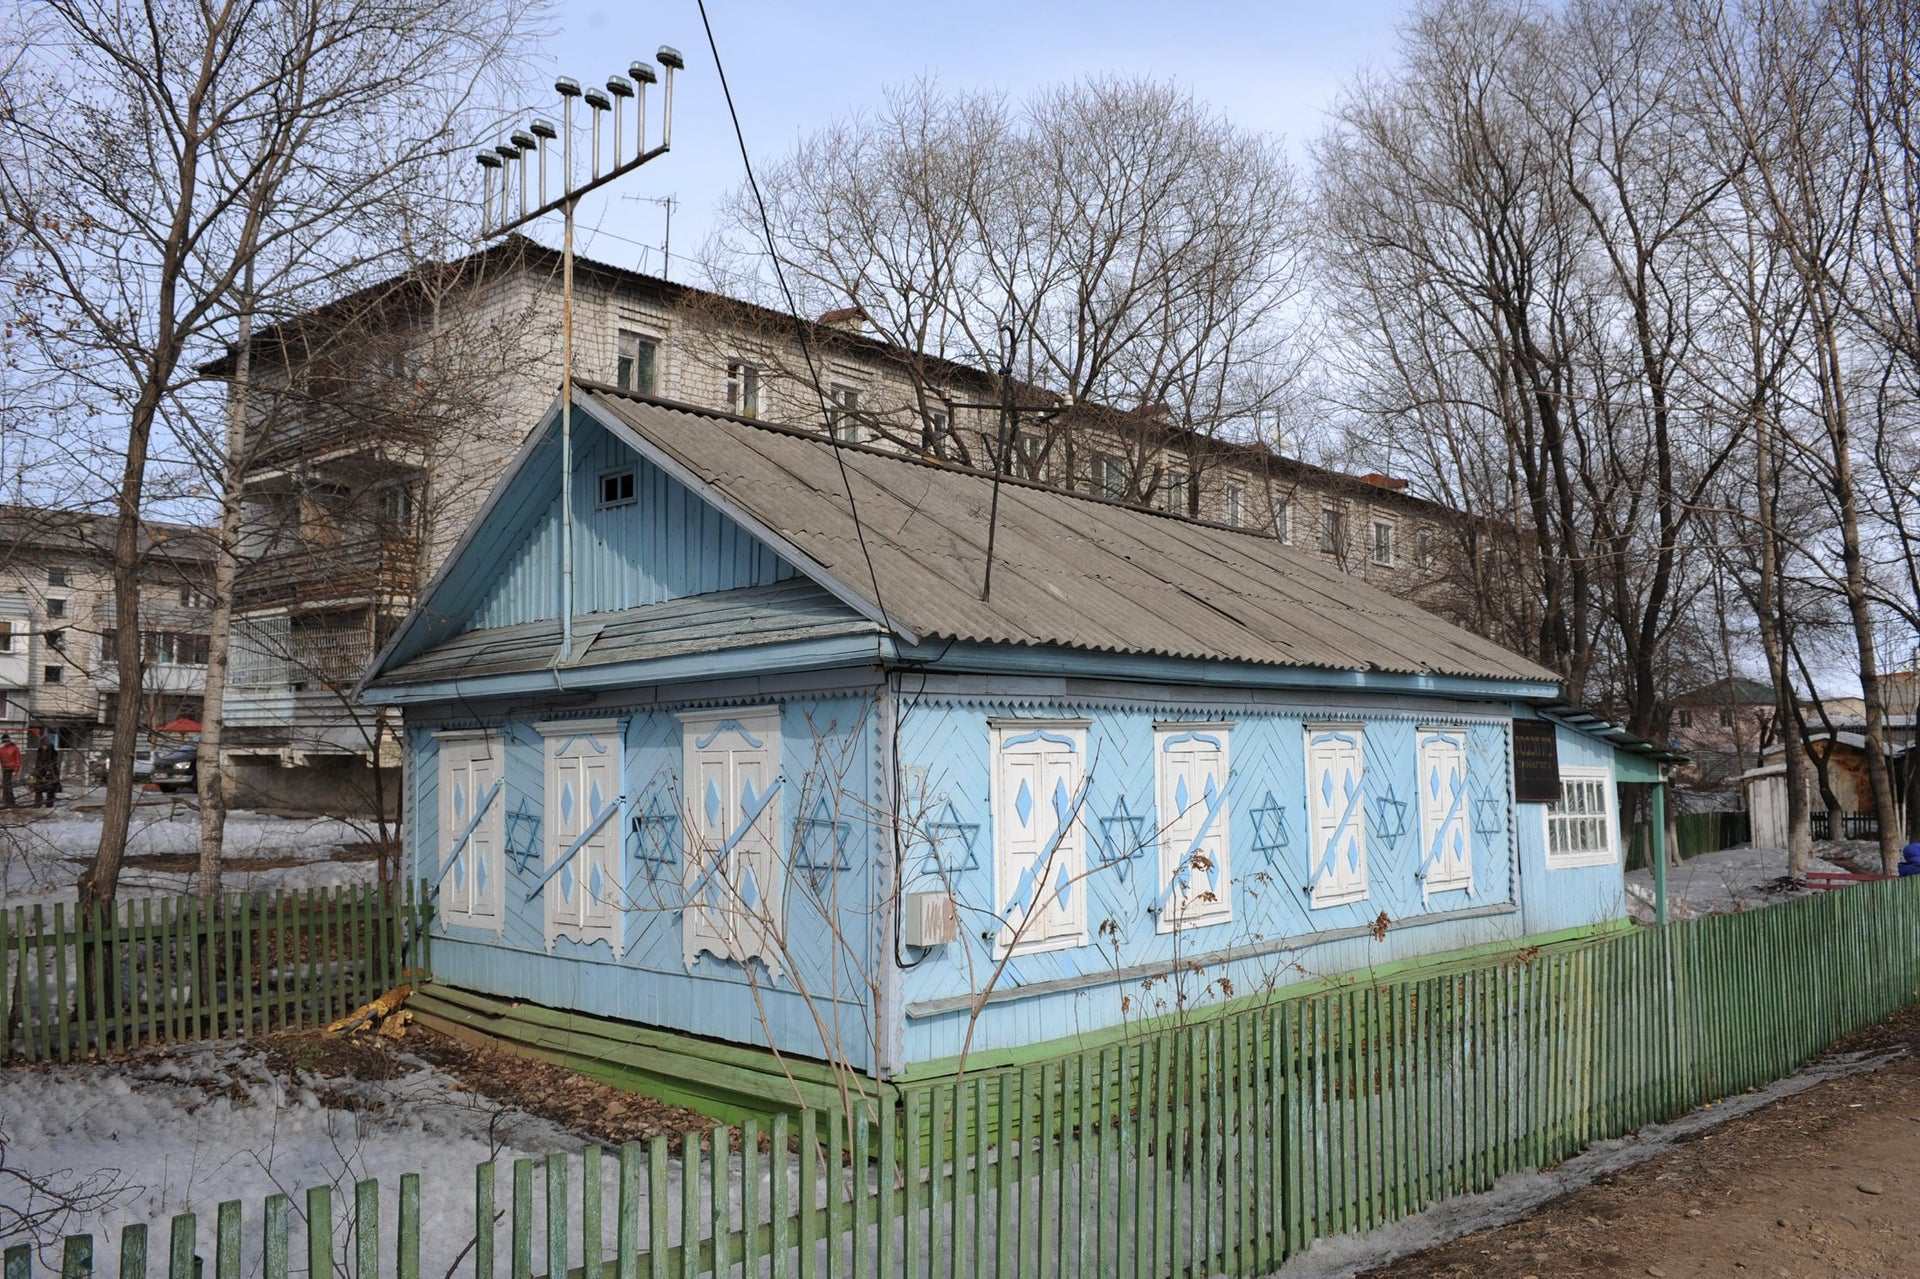 A synagogue is pictured in Birobidjan City, administrative center of the Jewish autonomous region, Russia.